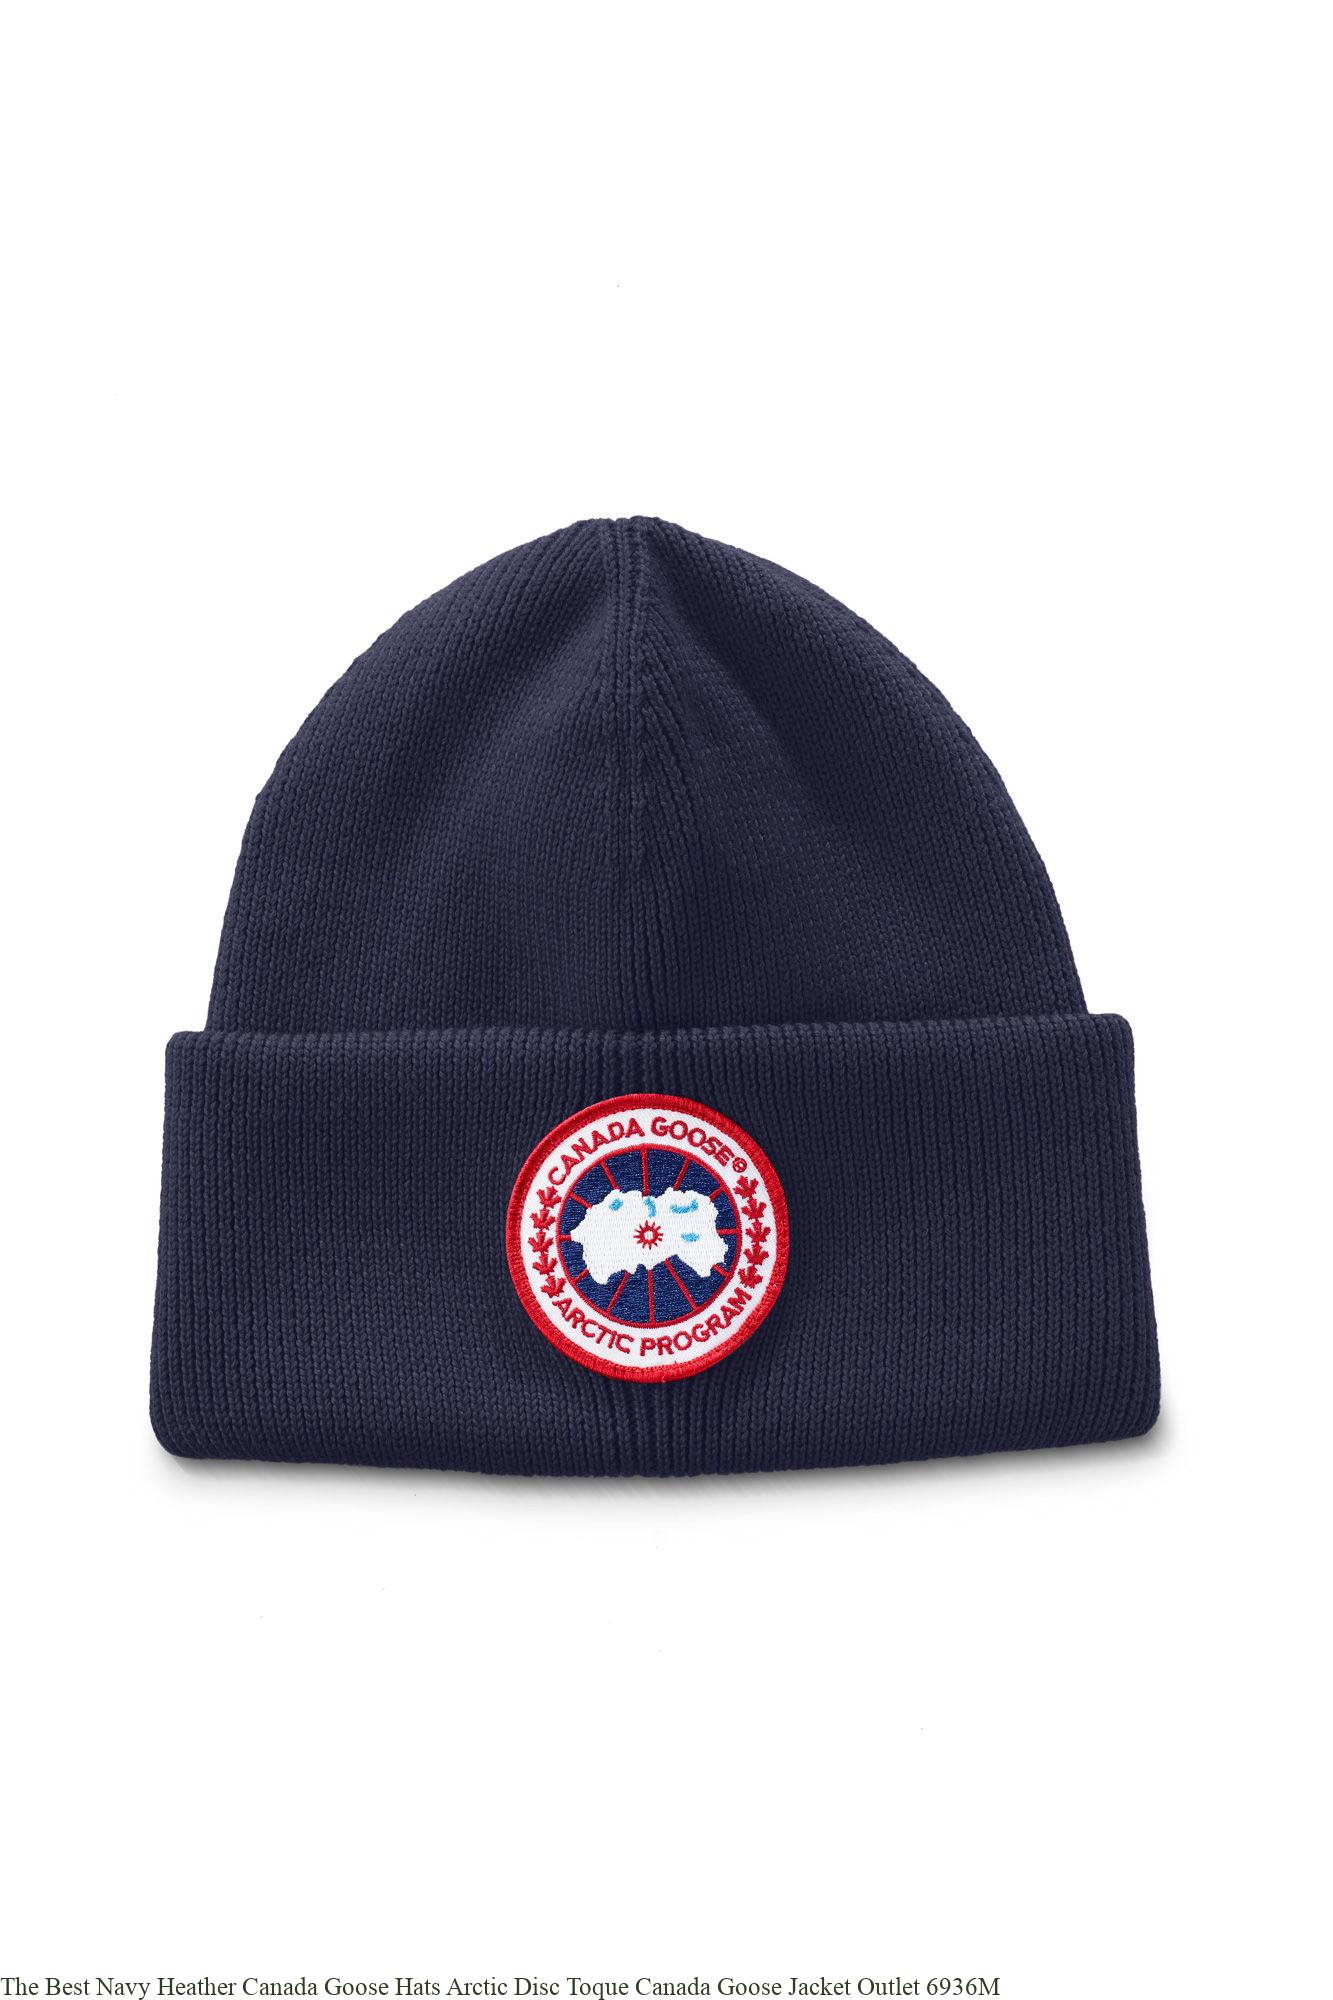 8c29e490330 The Best Navy Heather Canada Goose Hats Arctic Disc Toque Canada Goose  Jacket Outlet 6936M